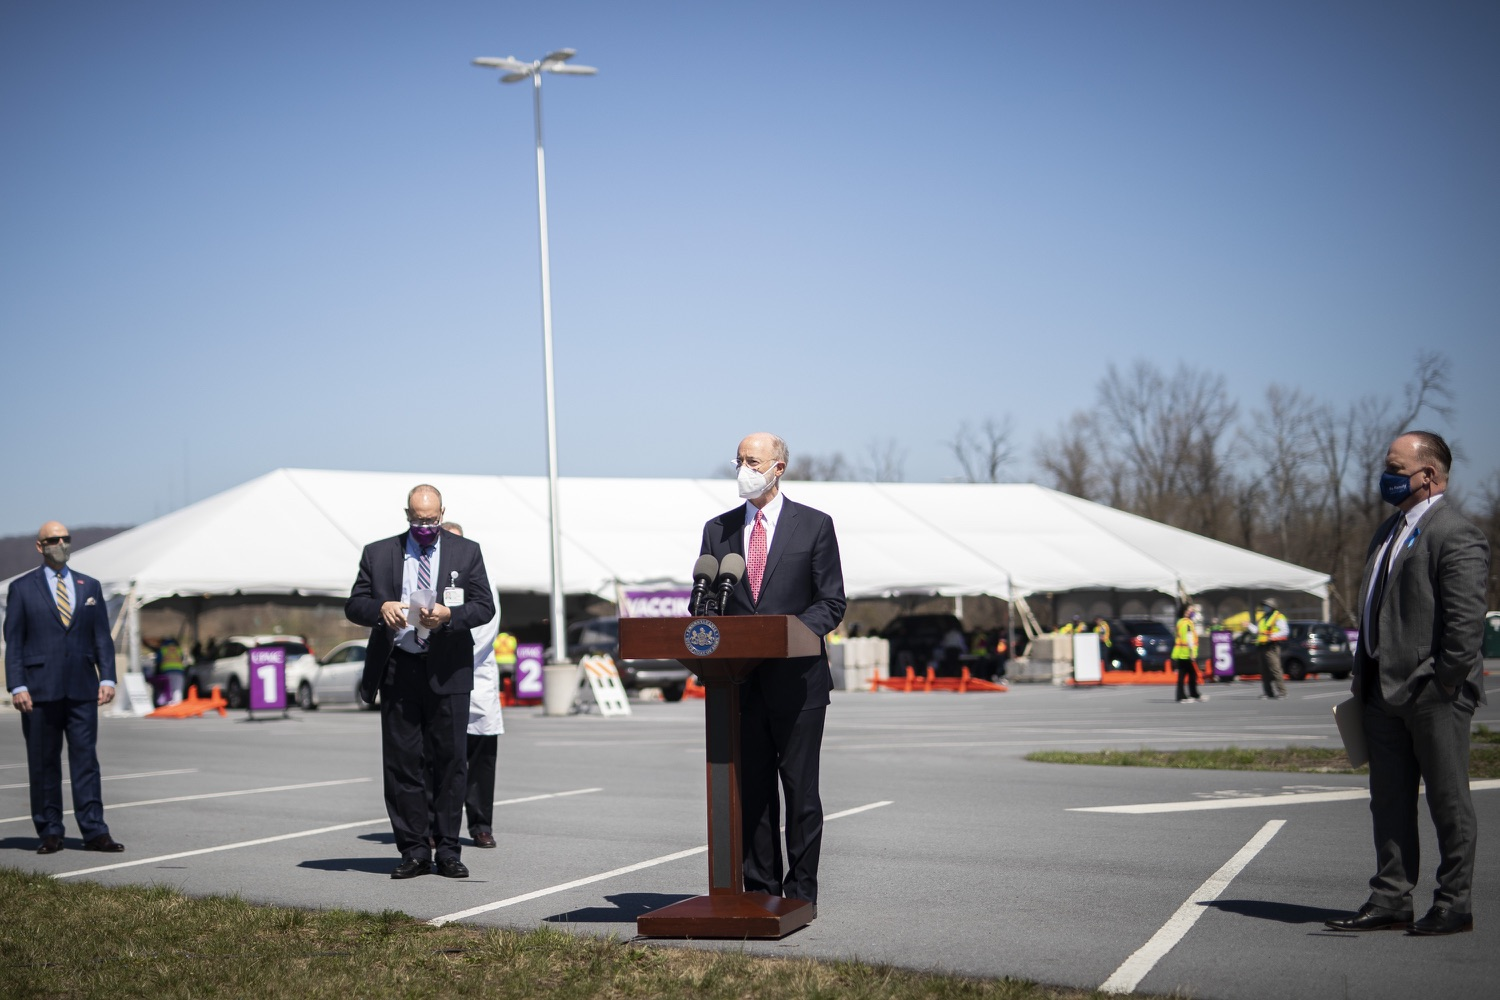 """<a href=""""https://filesource.wostreaming.net/commonwealthofpa/photo/18631_gov_hacc_vaccine_dz_012.jpg"""" target=""""_blank"""">⇣Download Photo<br></a>Pennsylvania Governor Tom Wolf speaking with the press.  Governor Wolf today visited the COVID-19 drive-thru mass vaccination clinic for Dauphin County residents at Harrisburg Area Community College. The drive-thru clinic was developed in partnership with UPMC Pinnacle and Dauphin County. He was joined by UPMC Pinnacle President Phil Guarneschelli and Dauphin County Commissioners Mike Pries and George P. Hartwick III.  HARRISBURG, PA -- March 30, 2021"""